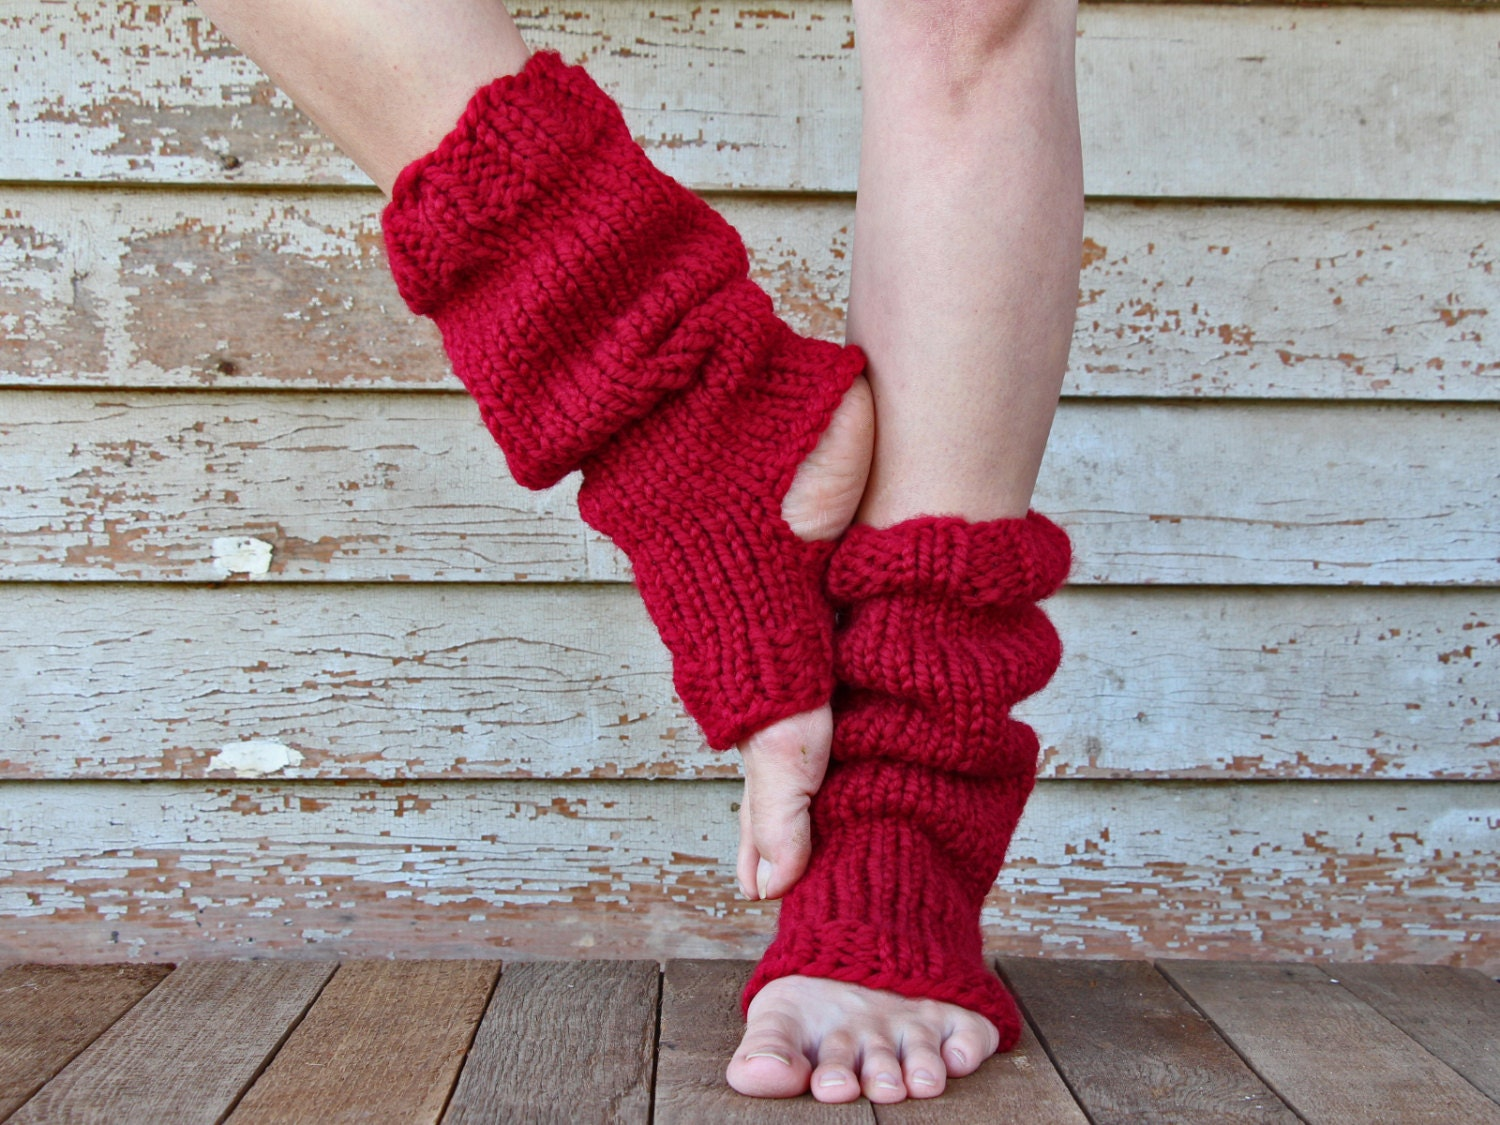 Leg Warmers Knitting Pattern In The Round : Yoga Sock Leg Warmer Knitting Pattern RELAXATION a set of